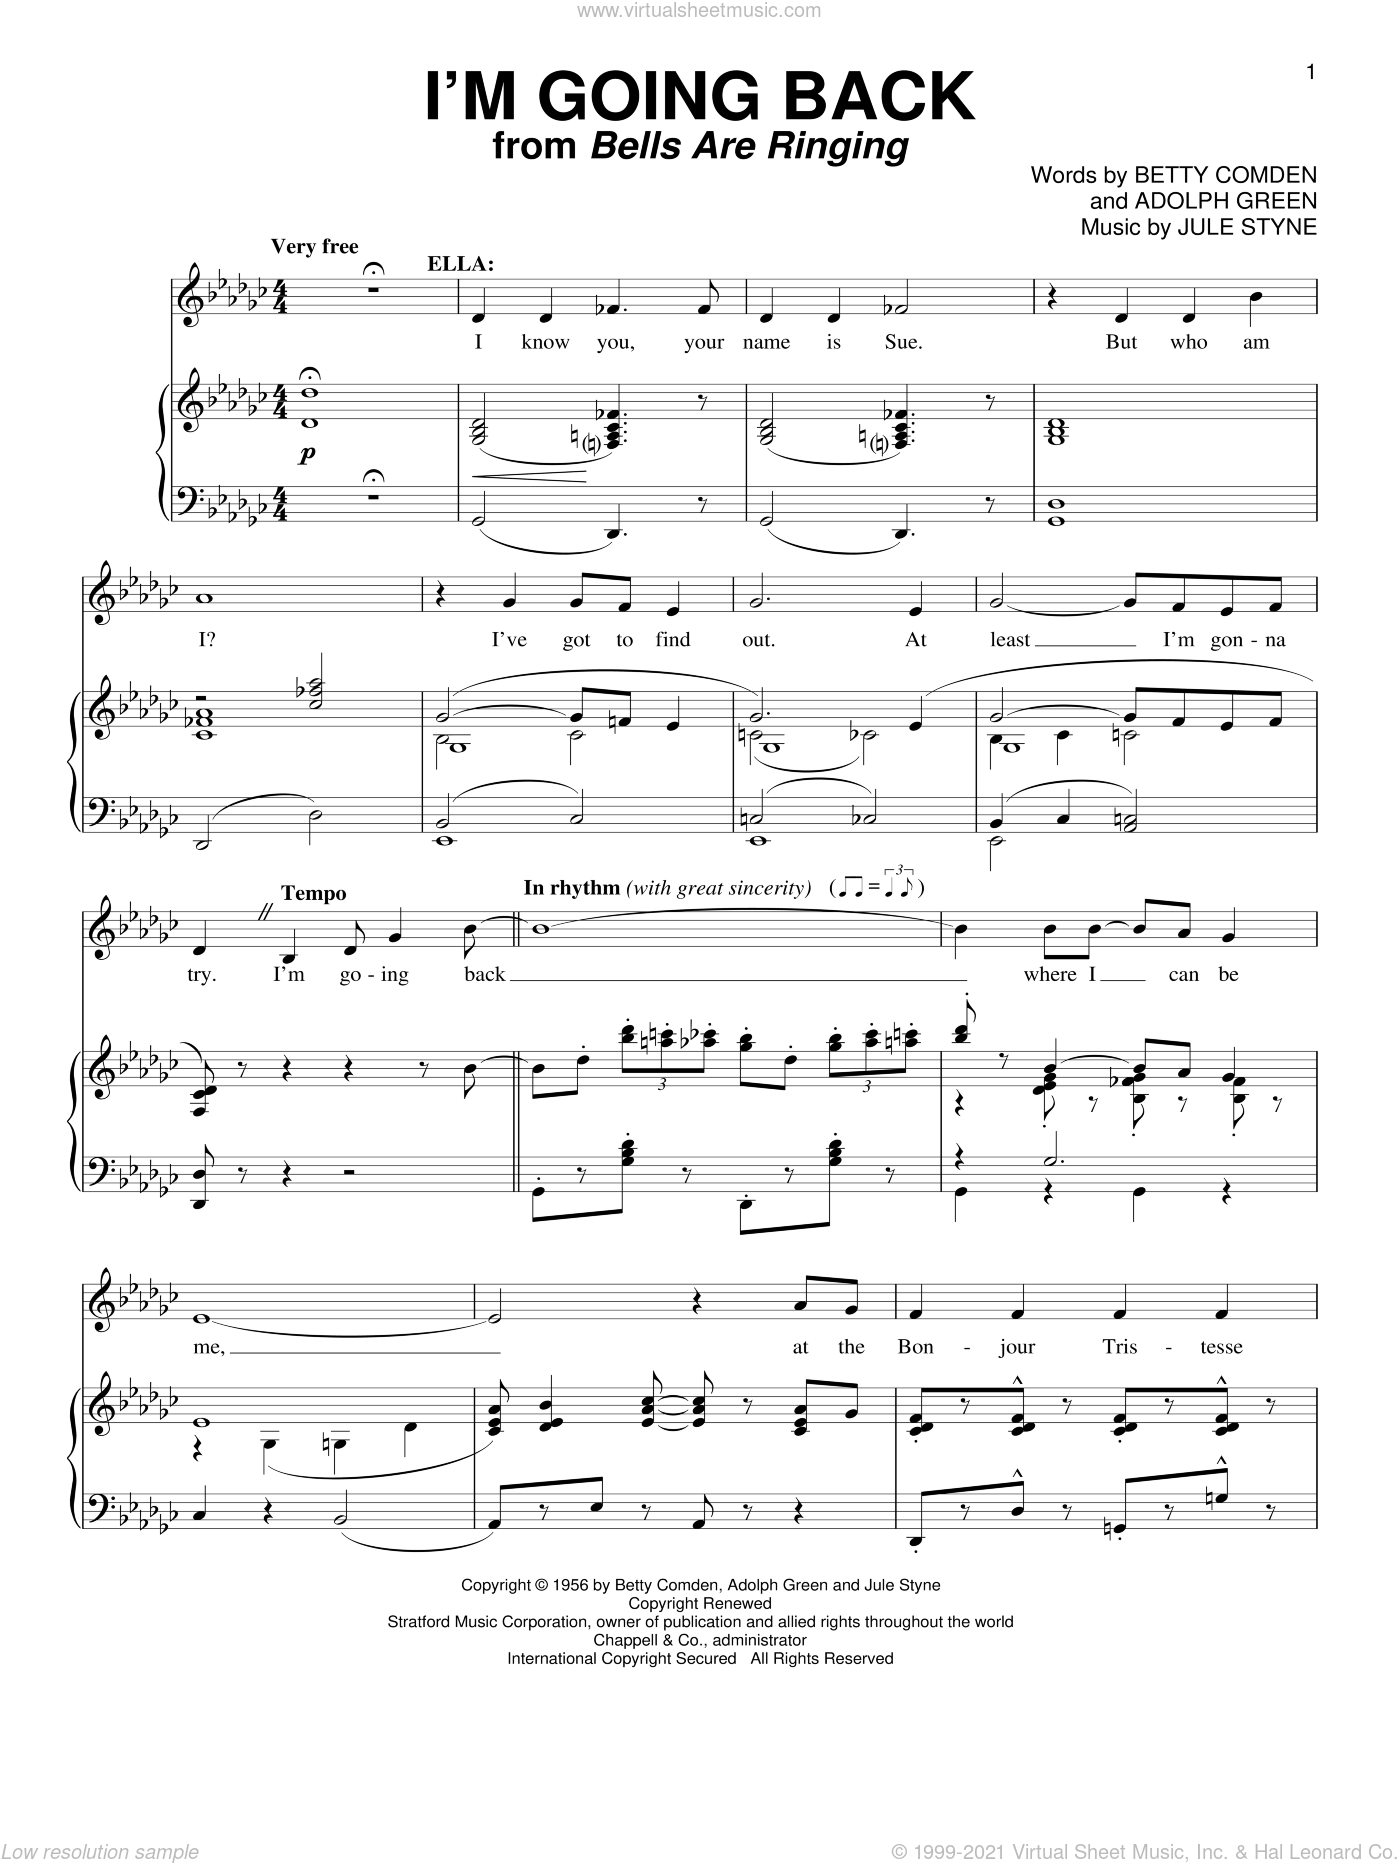 I'm Going Back sheet music for voice and piano by Jule Styne